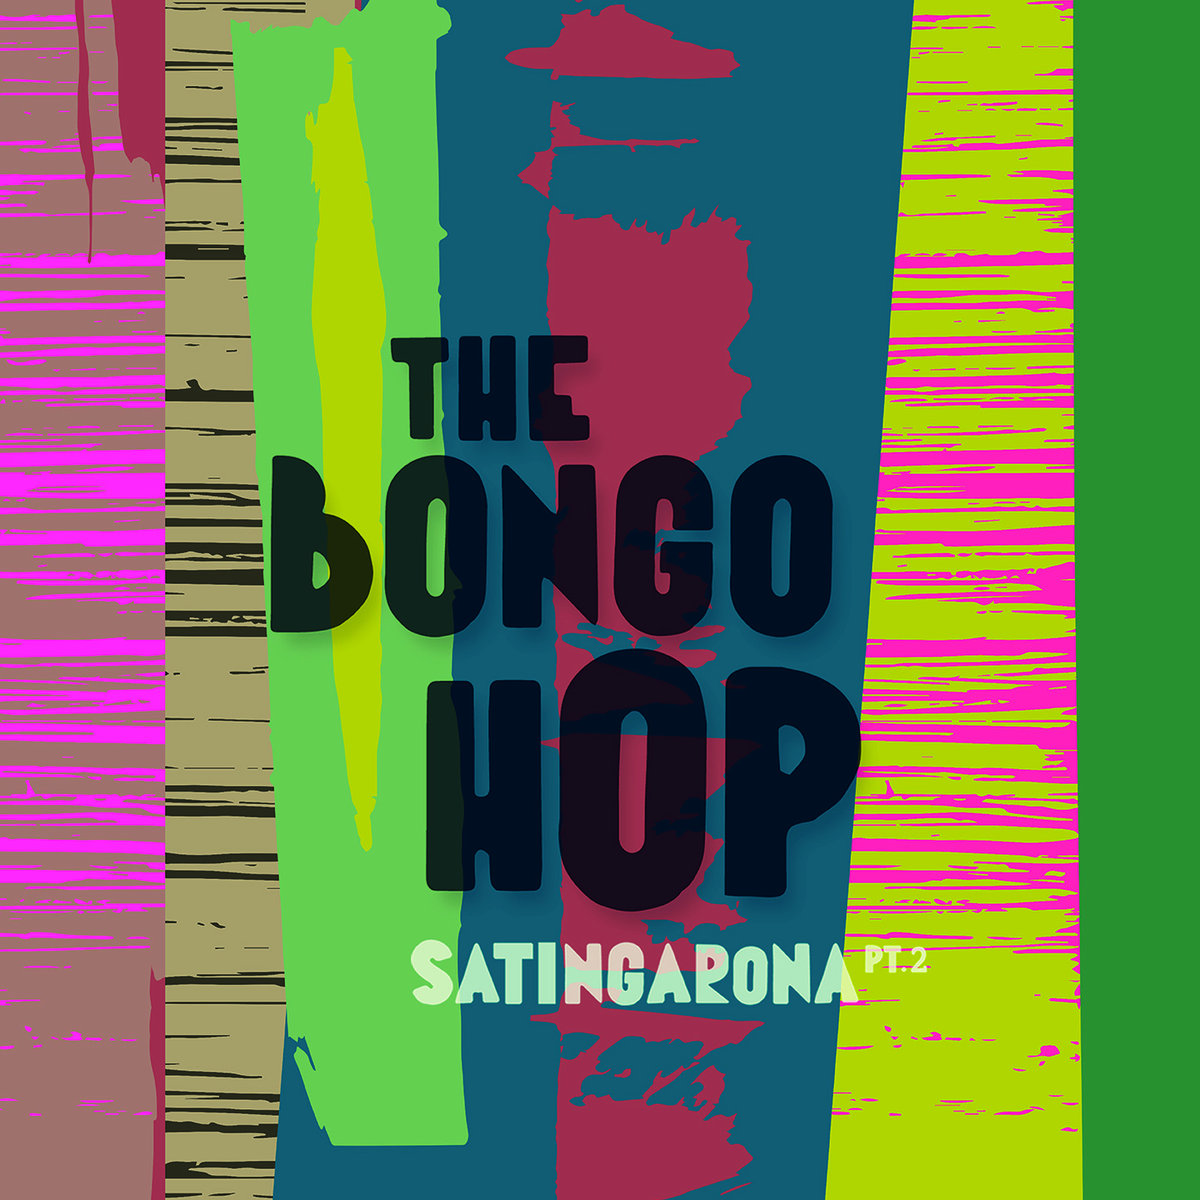 The Bongo Hop essential track